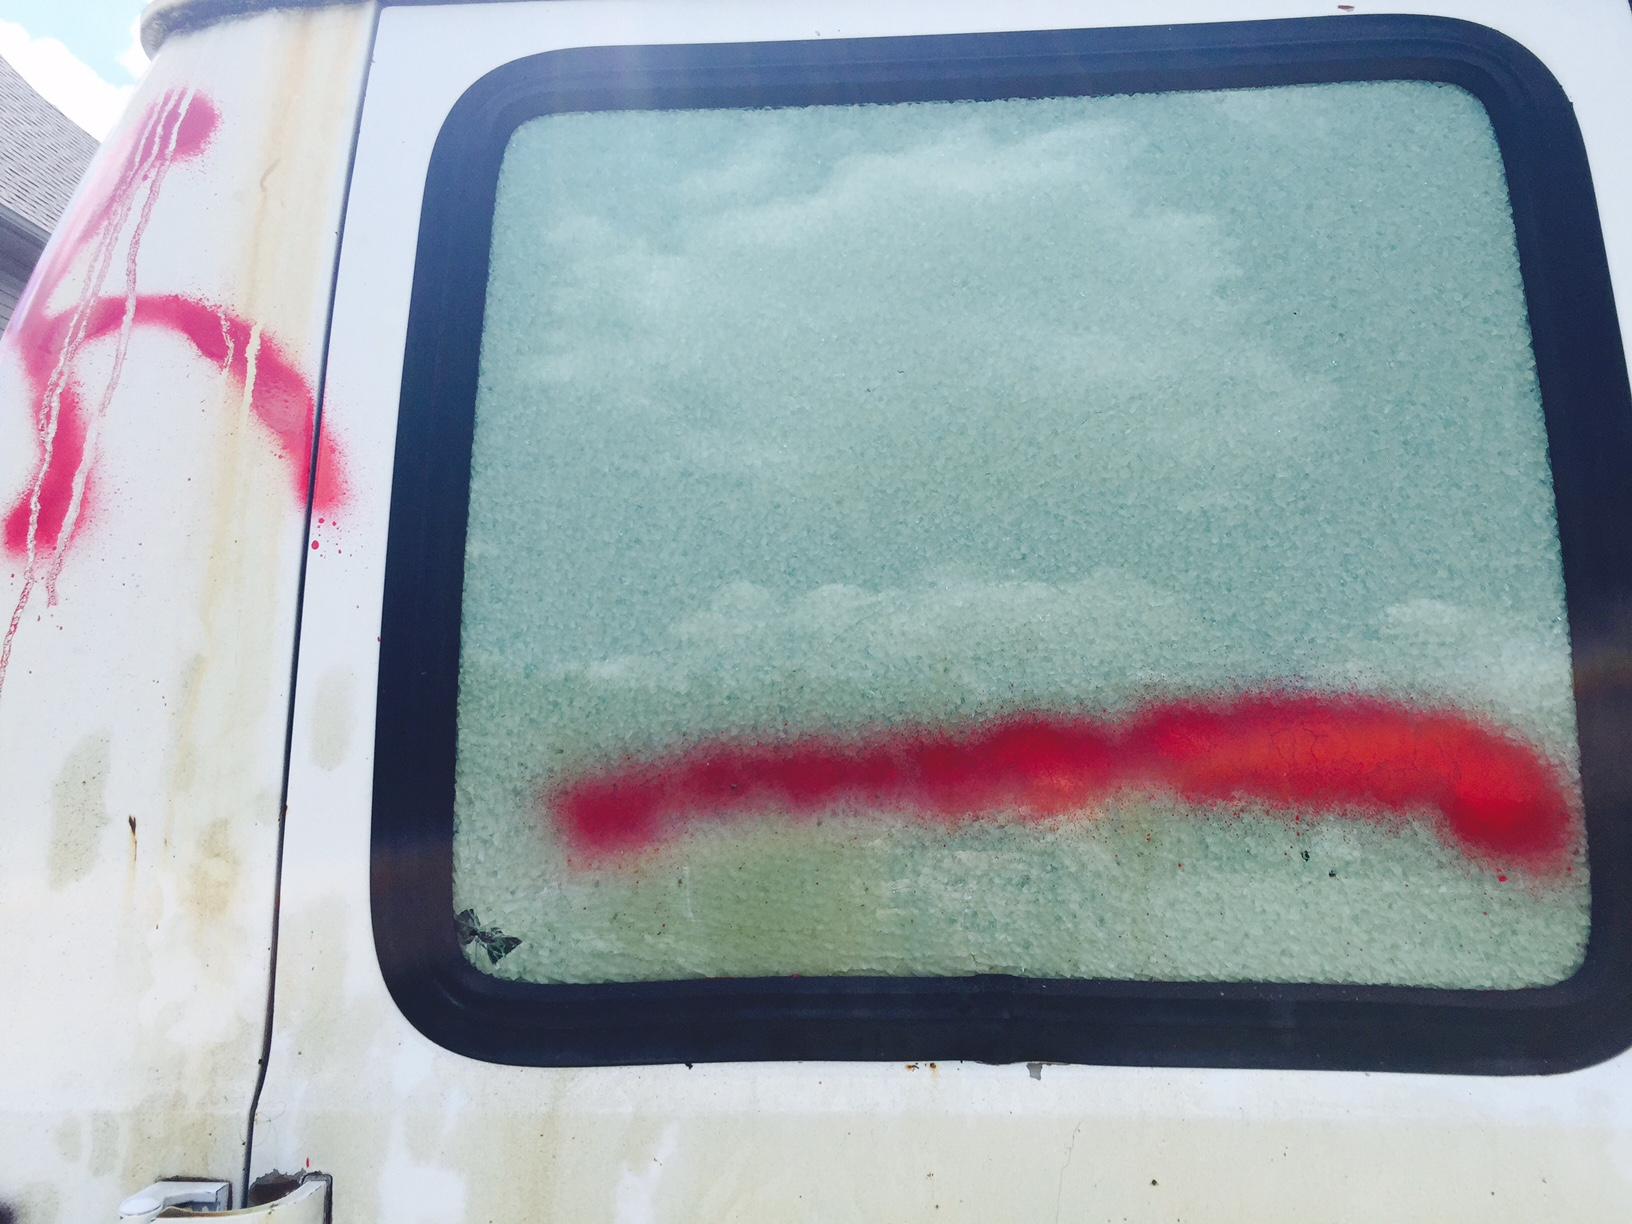 Words and images spray painted on family's van